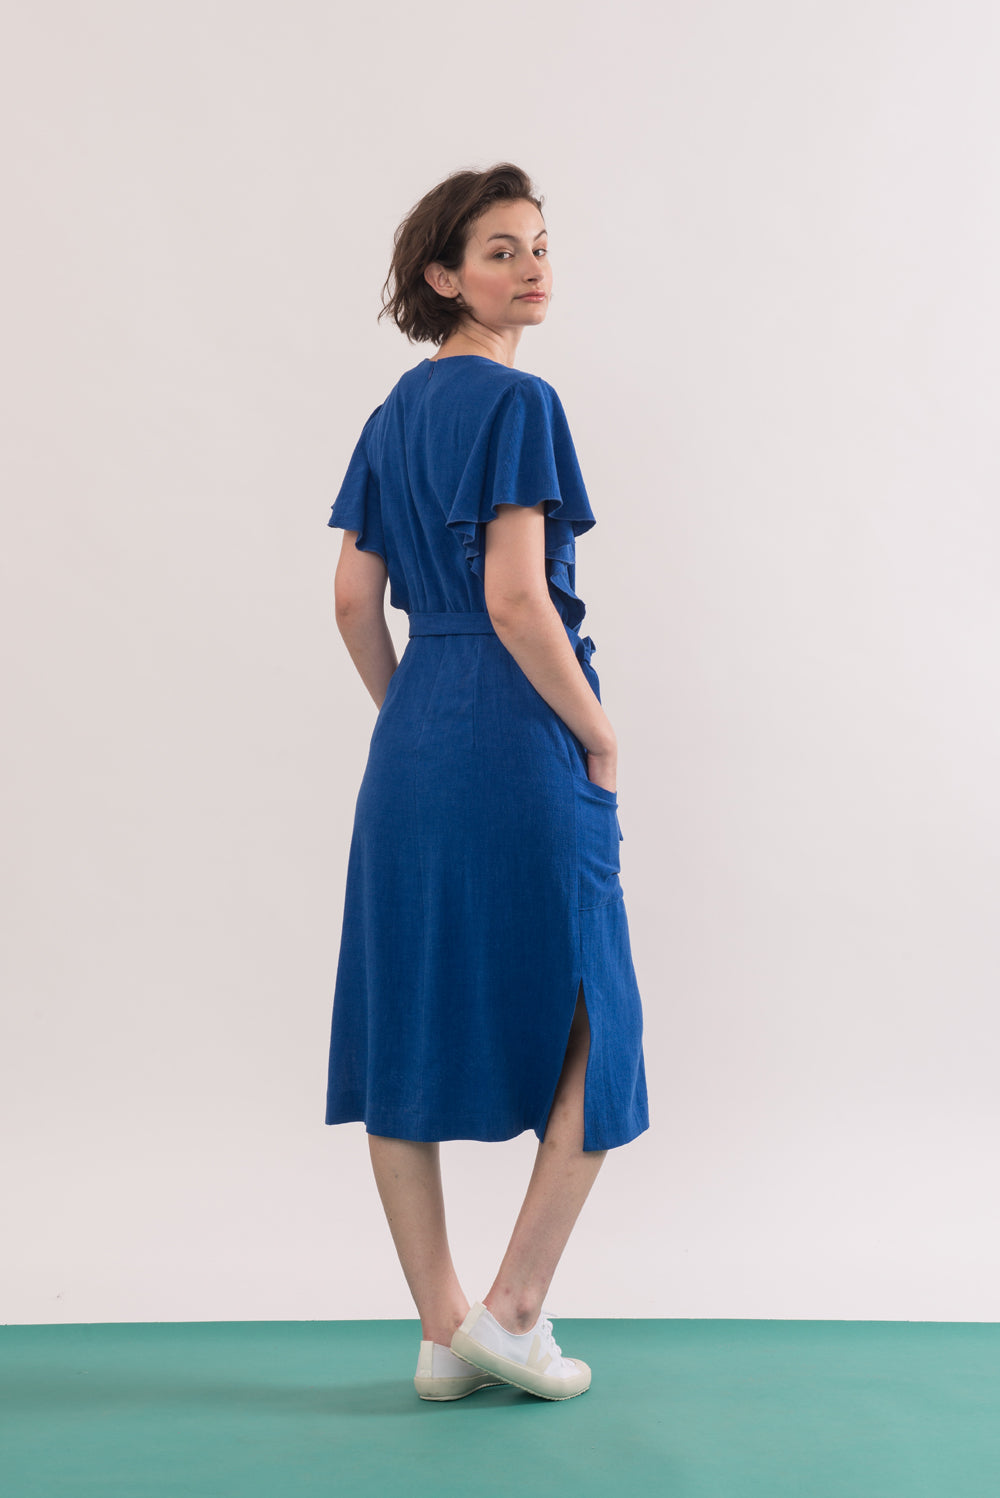 Klee Dress by Jennifer Glasgow, Electric Blue, back view, flowing draped sleeves, mid-length, patch pockets, side vents, belt, rayon and linen, sizes XS to XL, made in Montreal